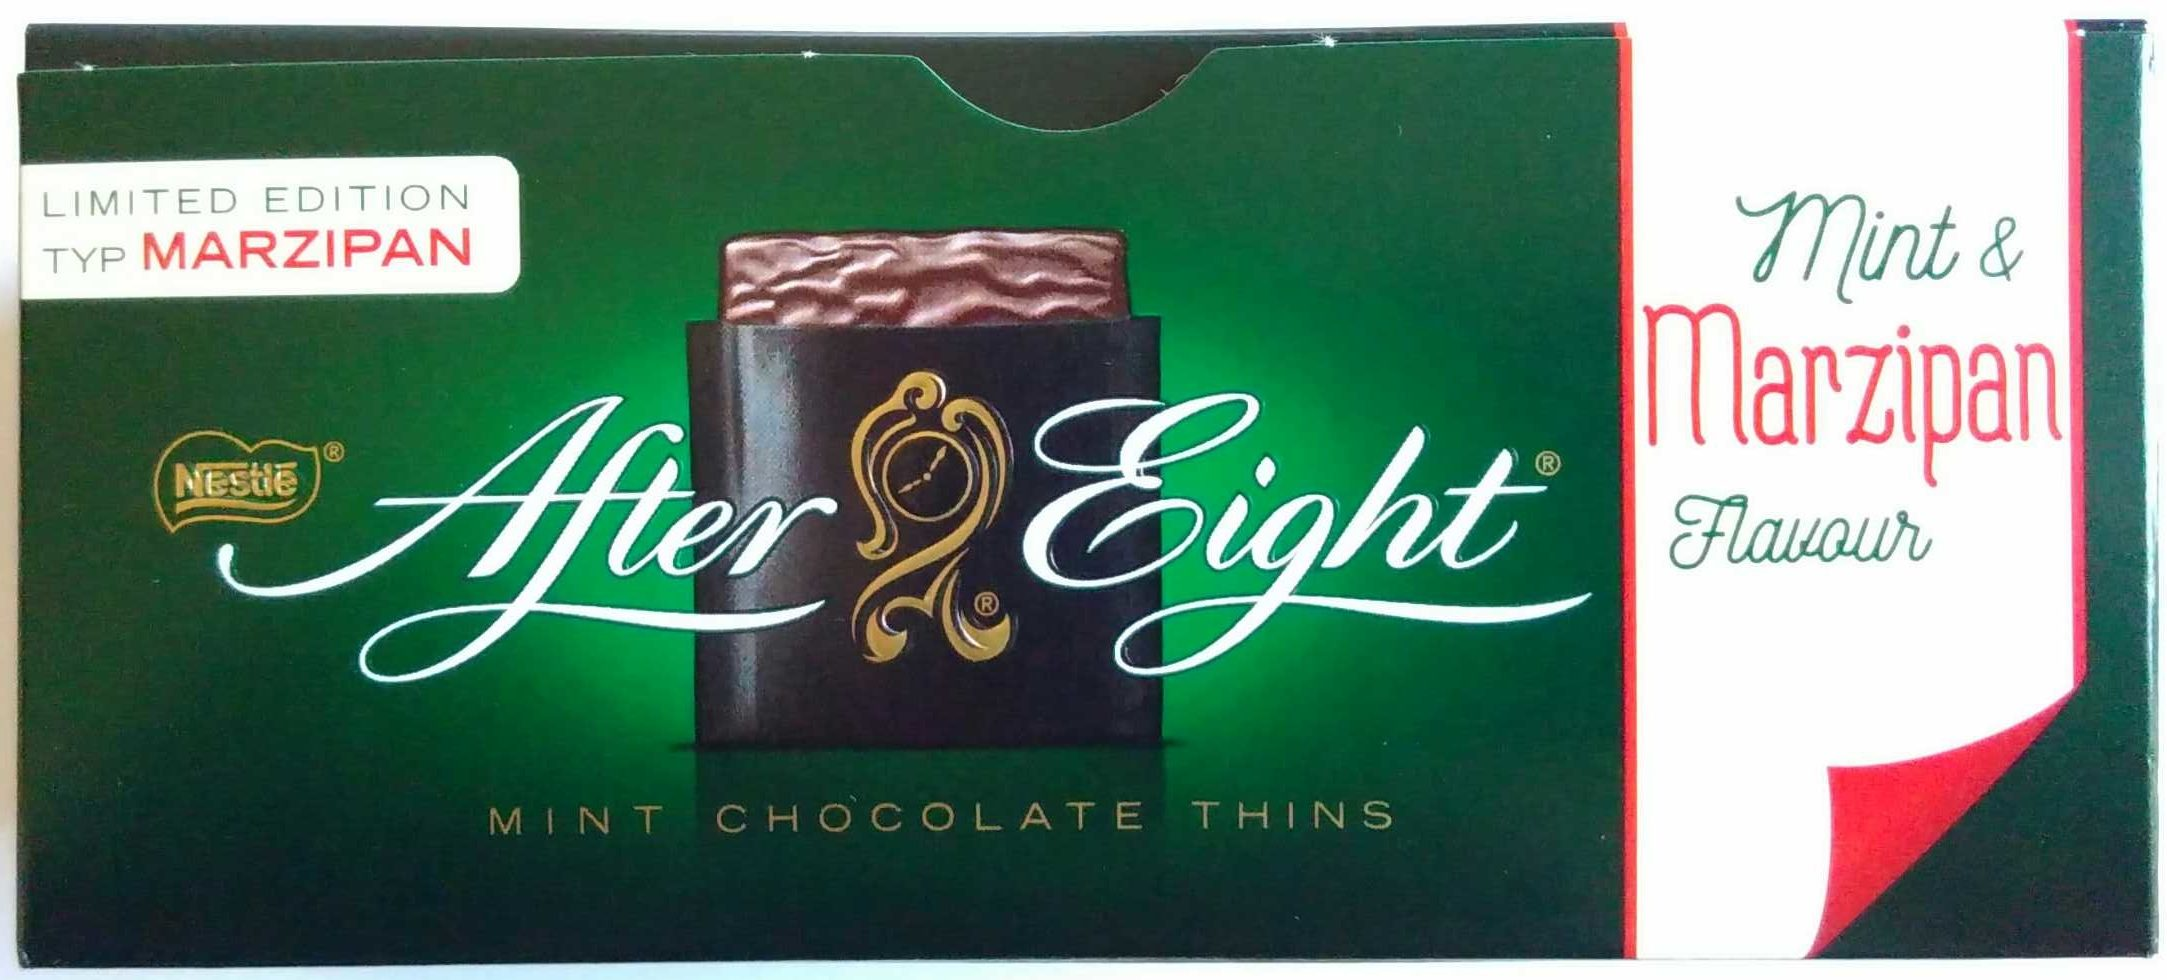 After Eight Mint & Marzipan Flavour - Product